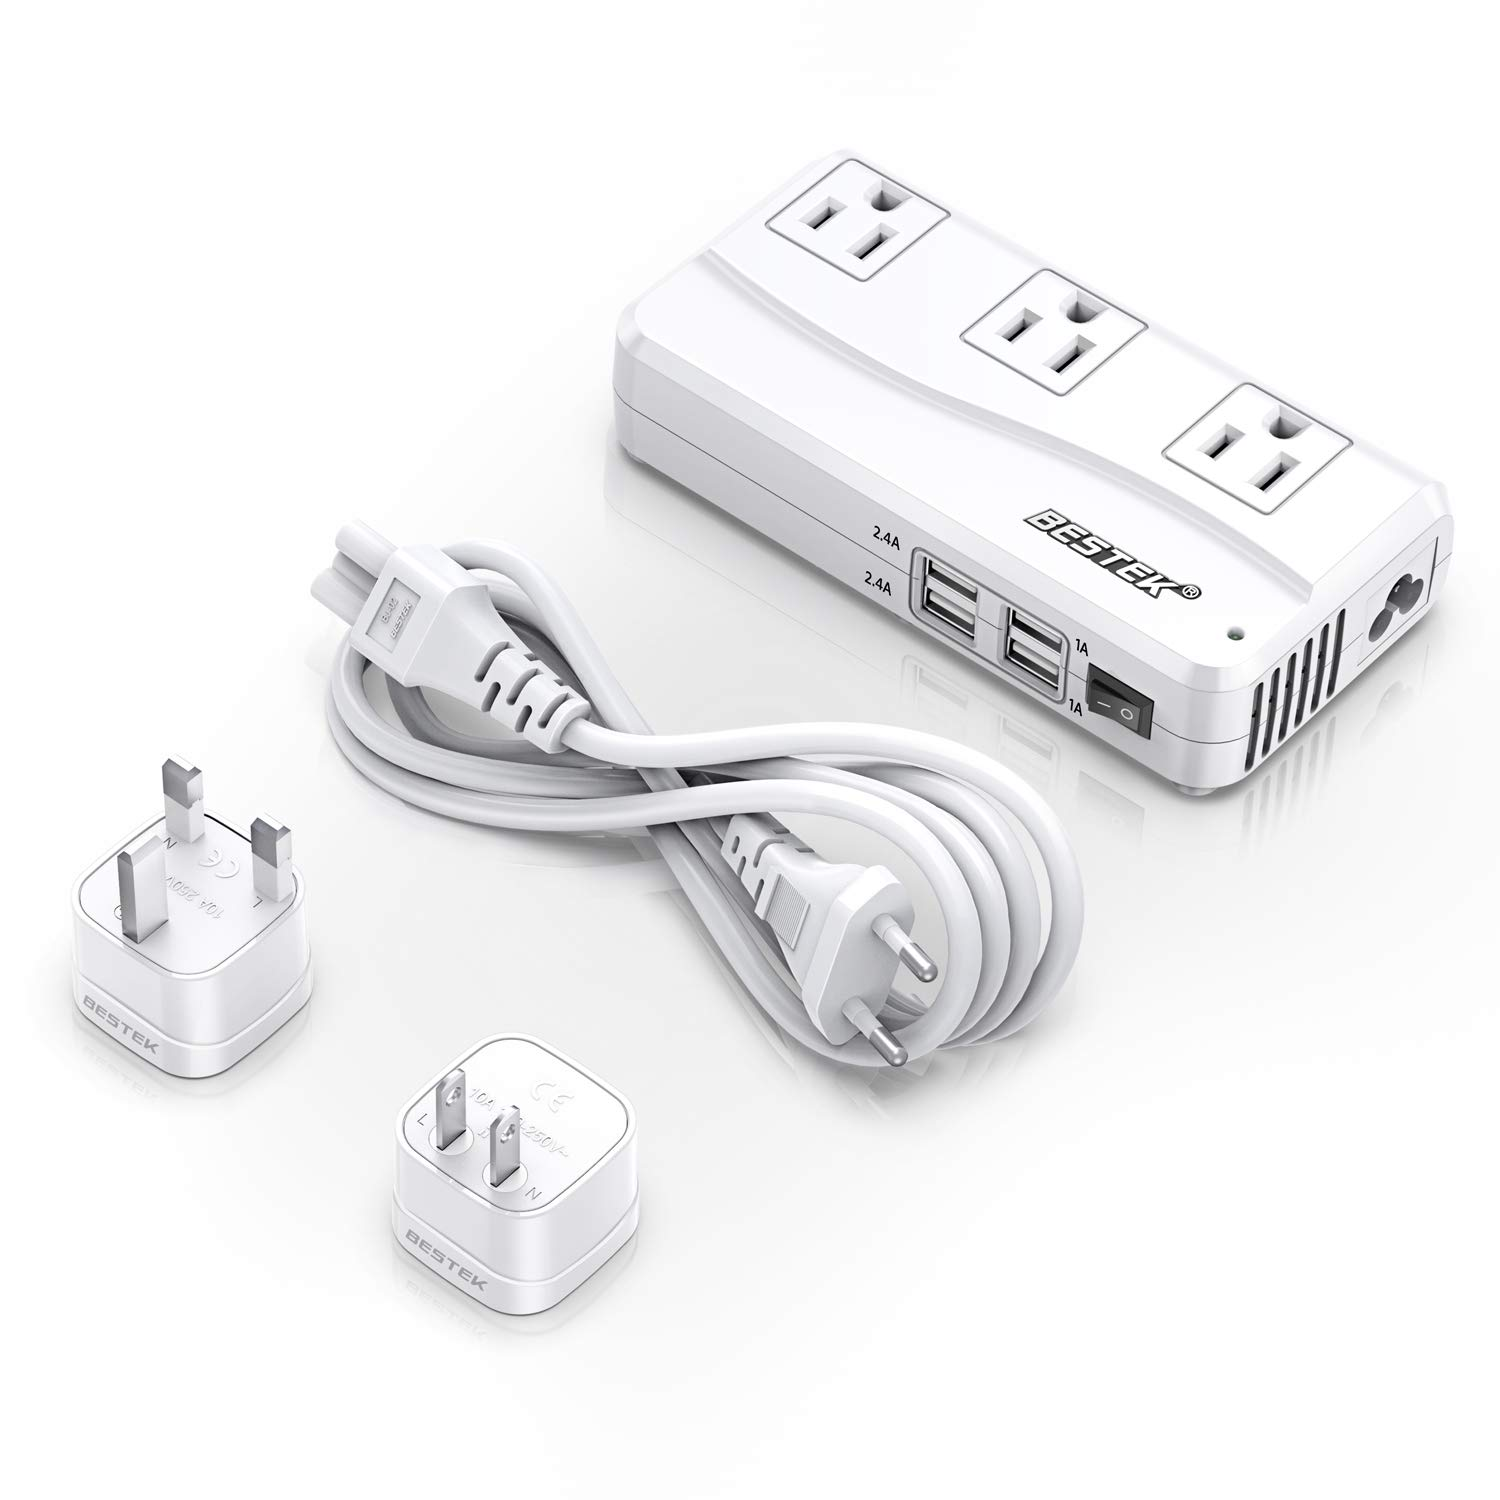 BESTEK Universal Travel Adapter 220V to 110V Voltage Converter with 6A 4-Port USB Charging and UK/AU/US/EU Worldwide Plug Adapter (White) by BESTEK